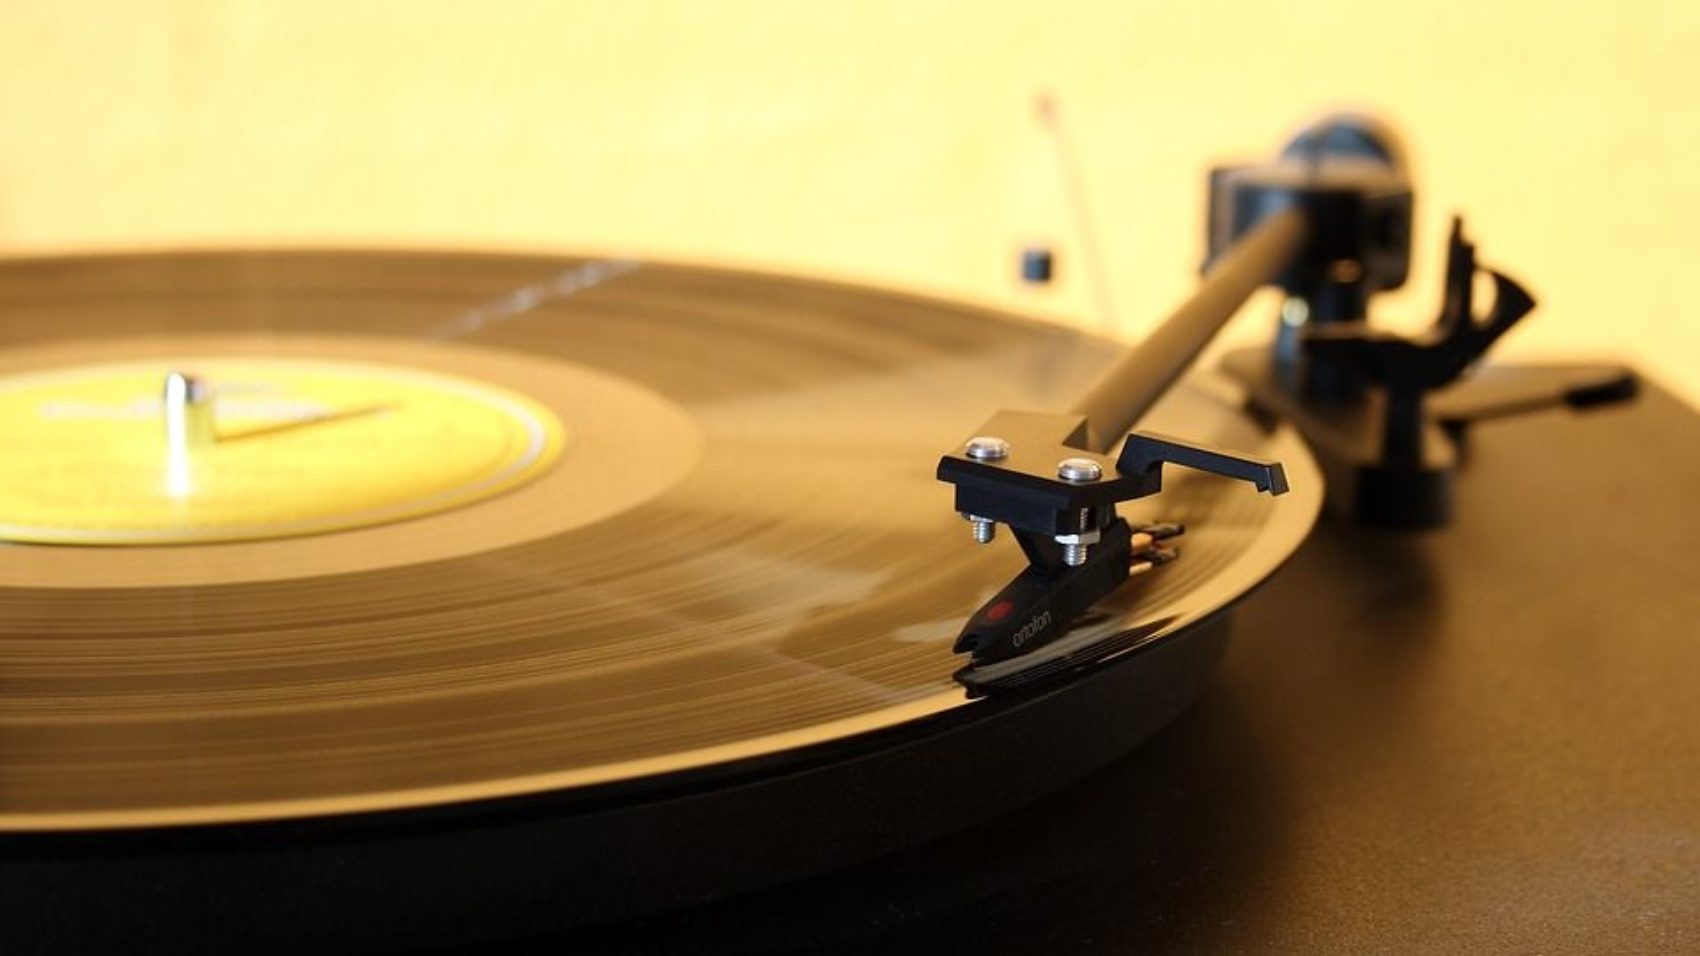 s-record-player-1224409_960_720